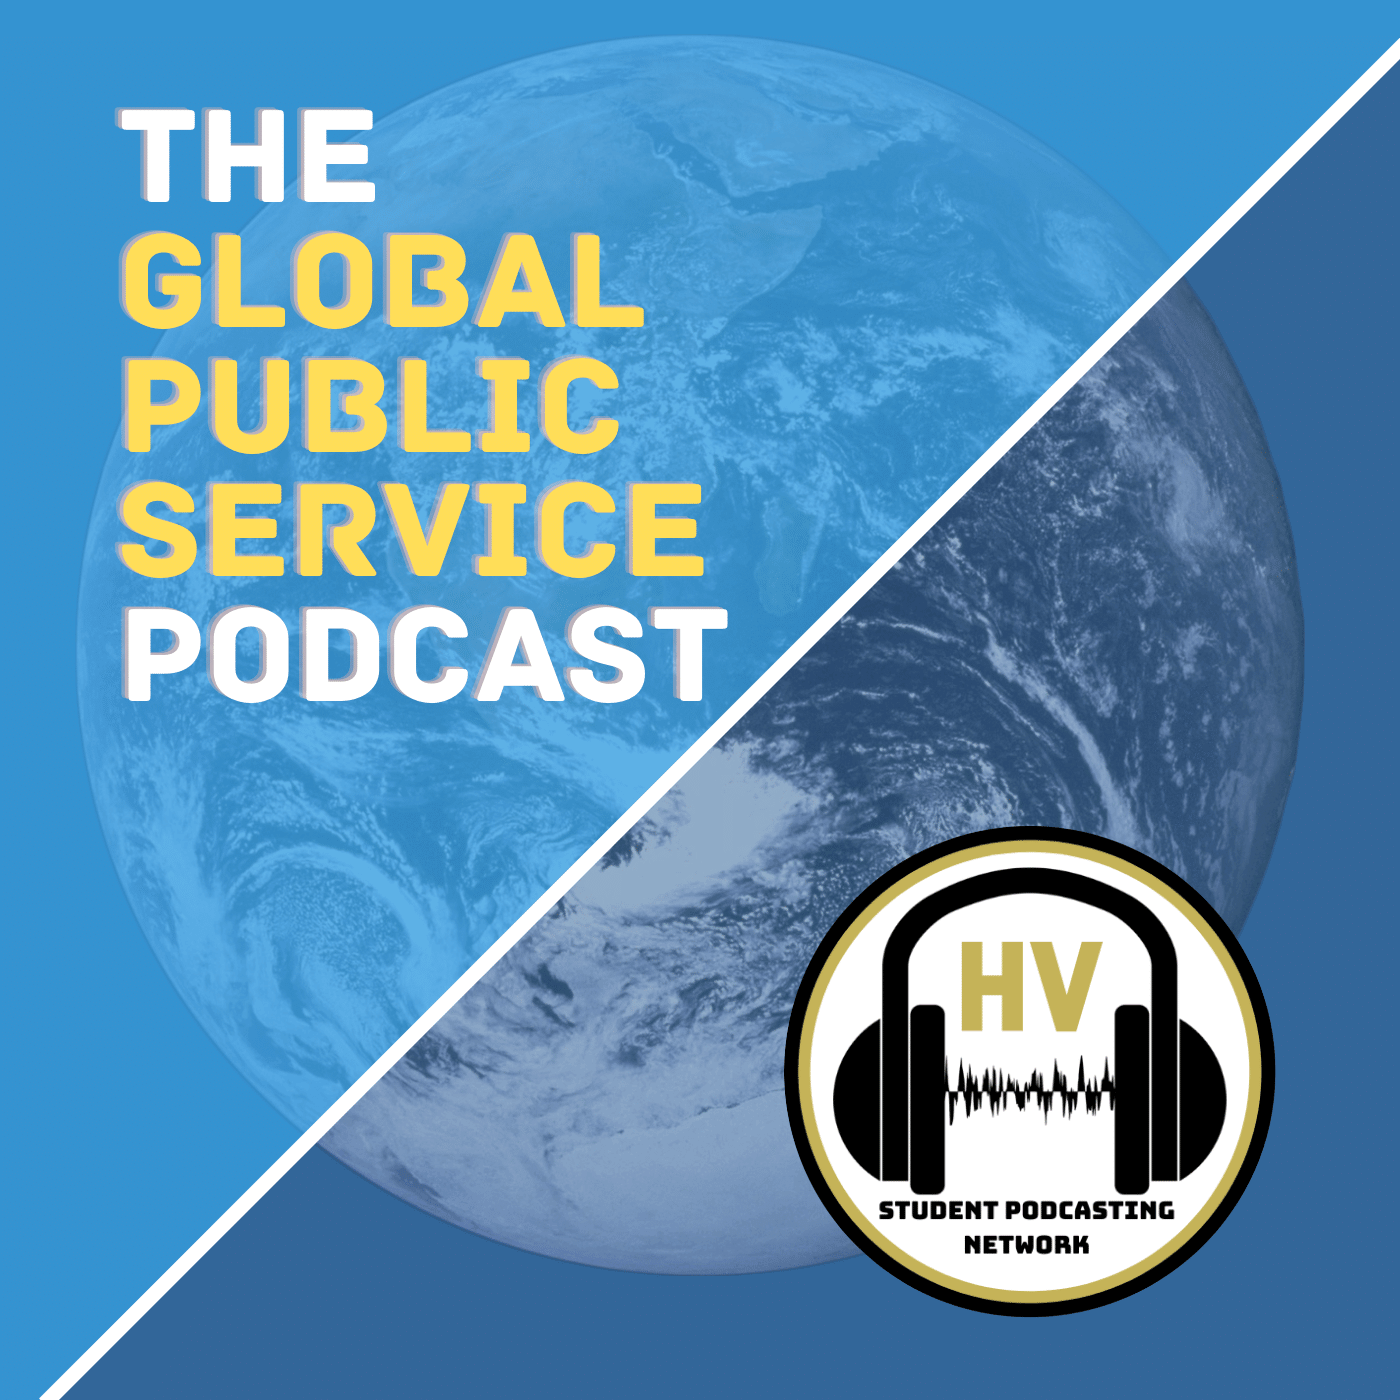 Artwork for podcast The Global Public Service (GPS) Podcast